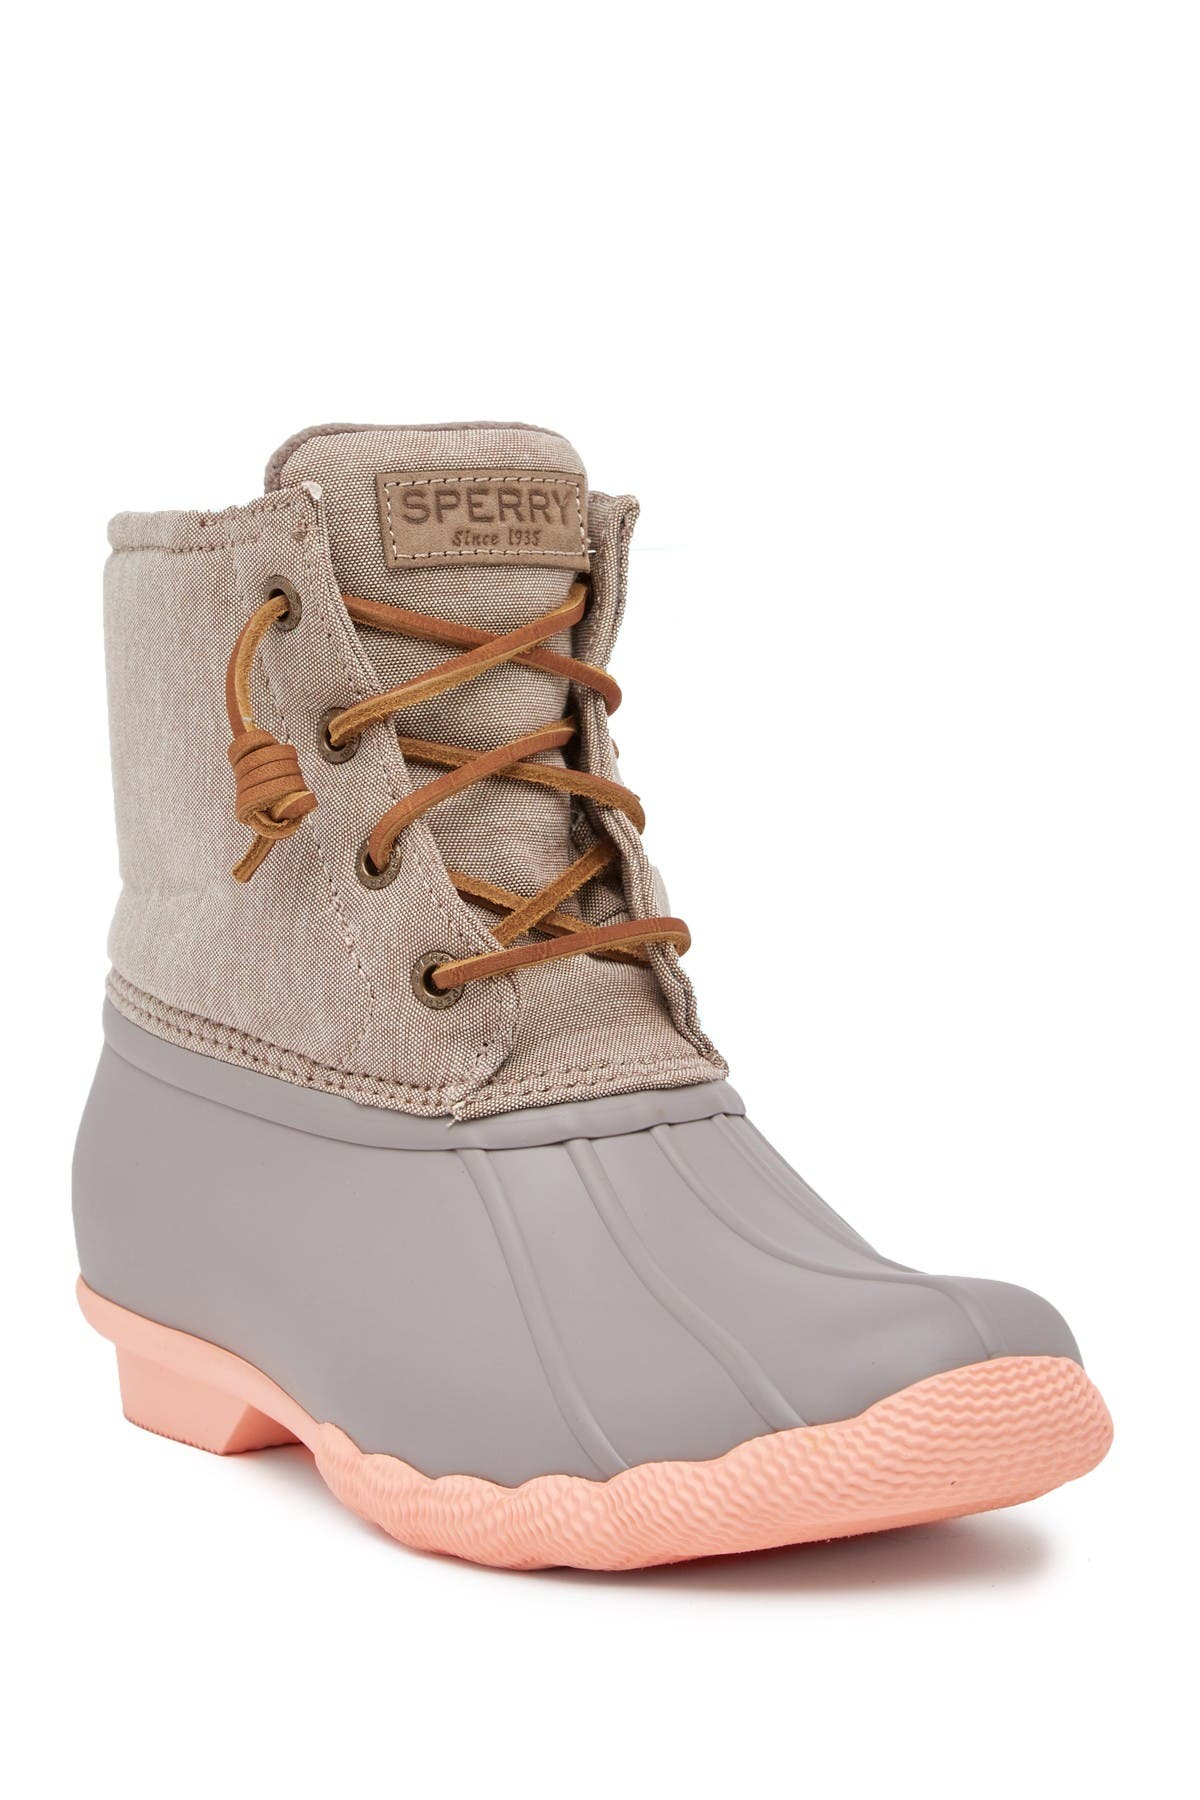 Sperry | Saltwater Pop Outsole